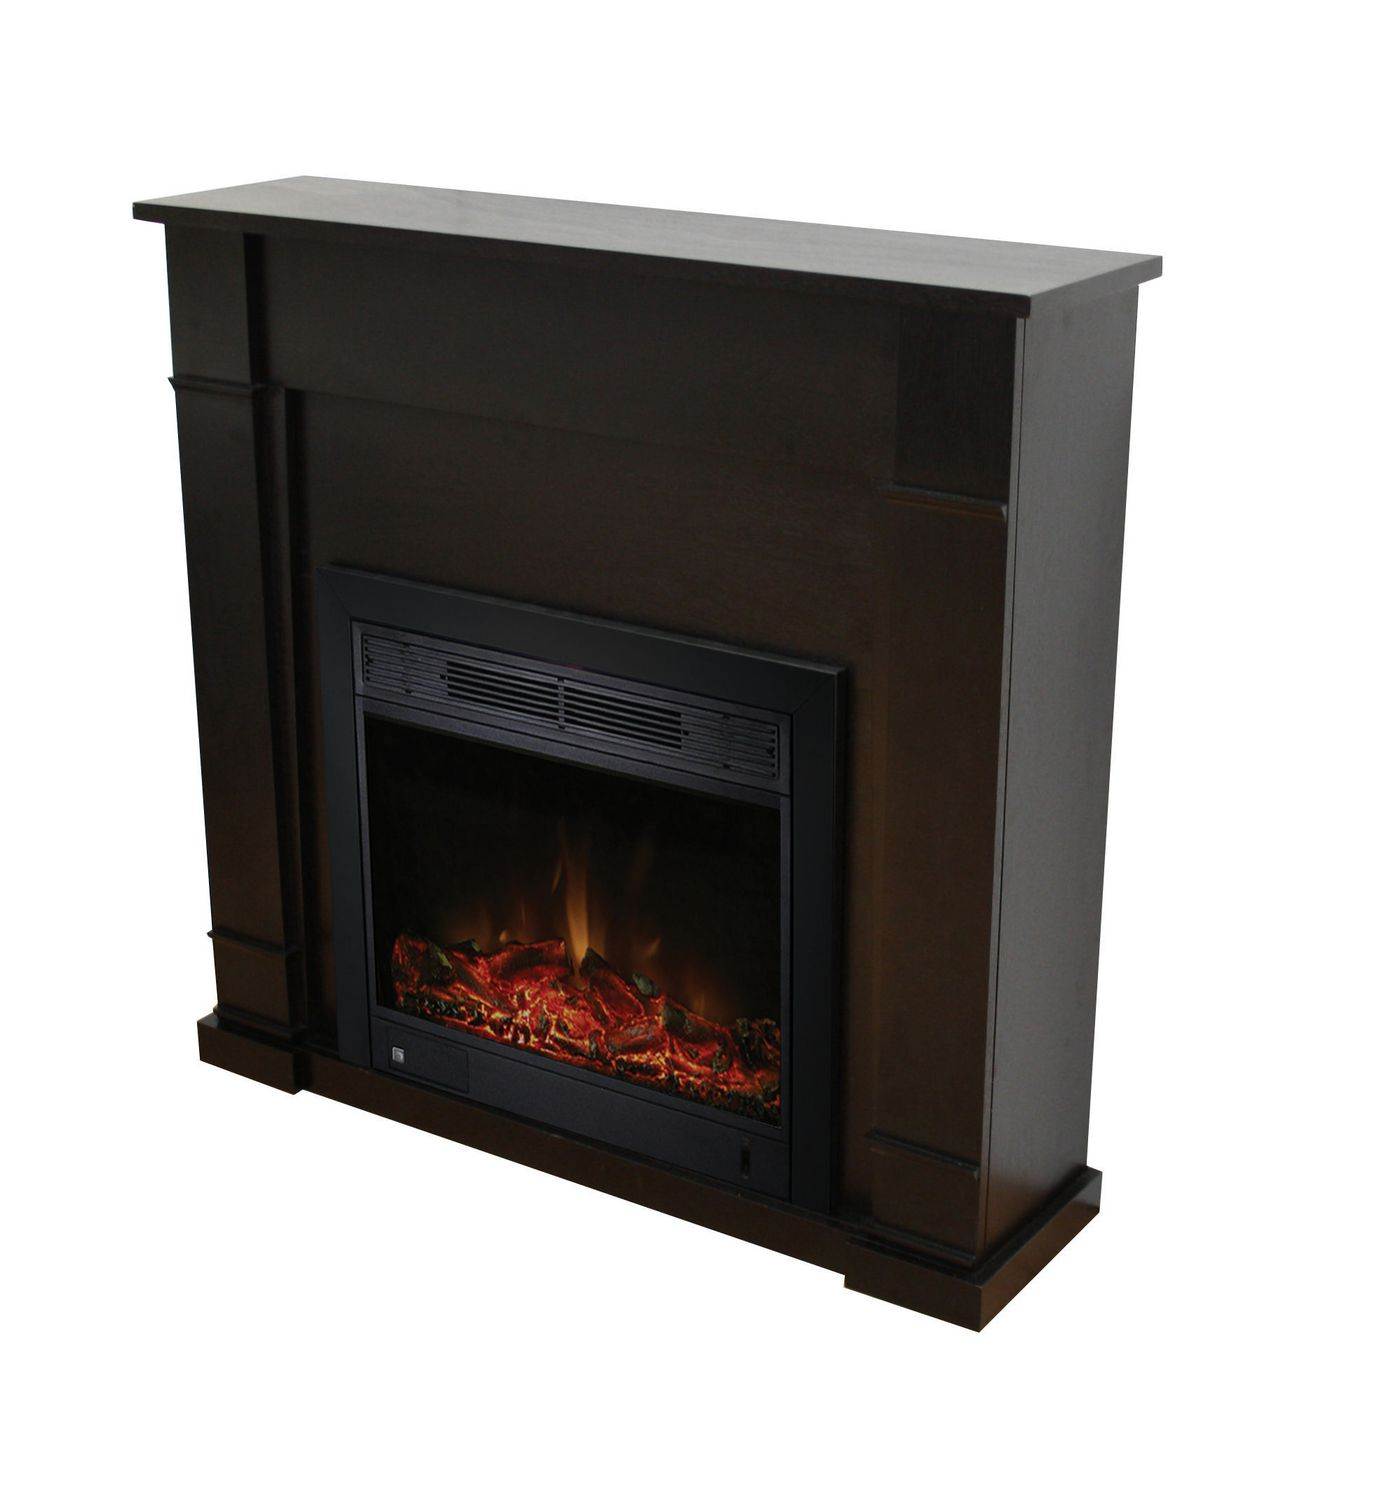 indoor fireplace inserts u0026 wall mounts for home at walmart